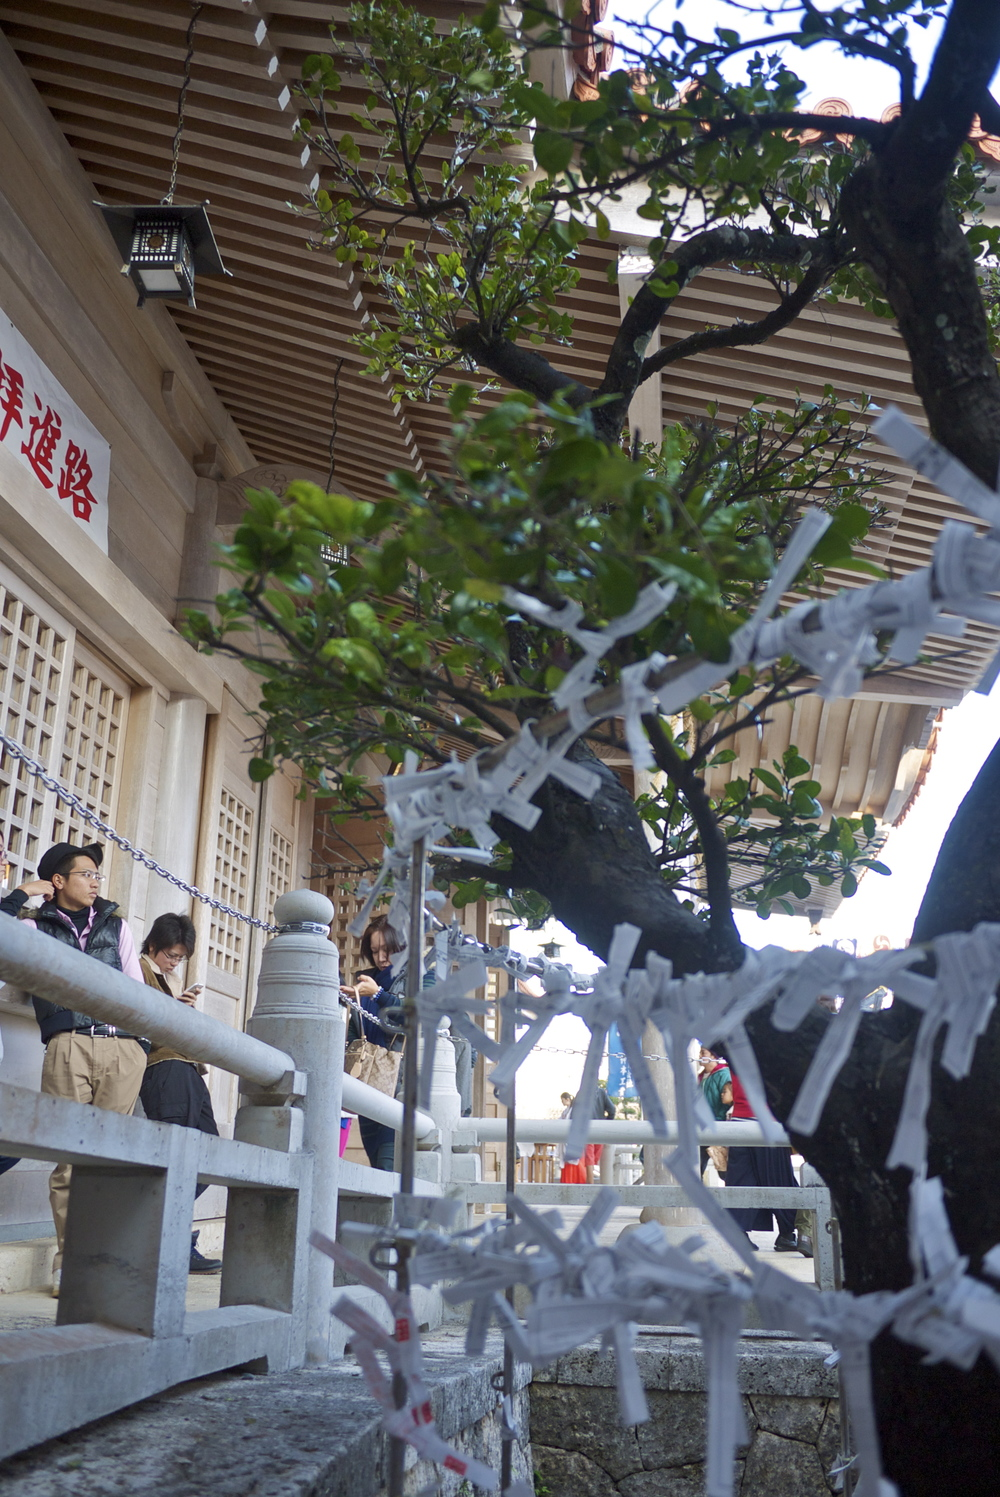 Omikuji fortunes tied to the fence at Futenma Shrine in Okinawa